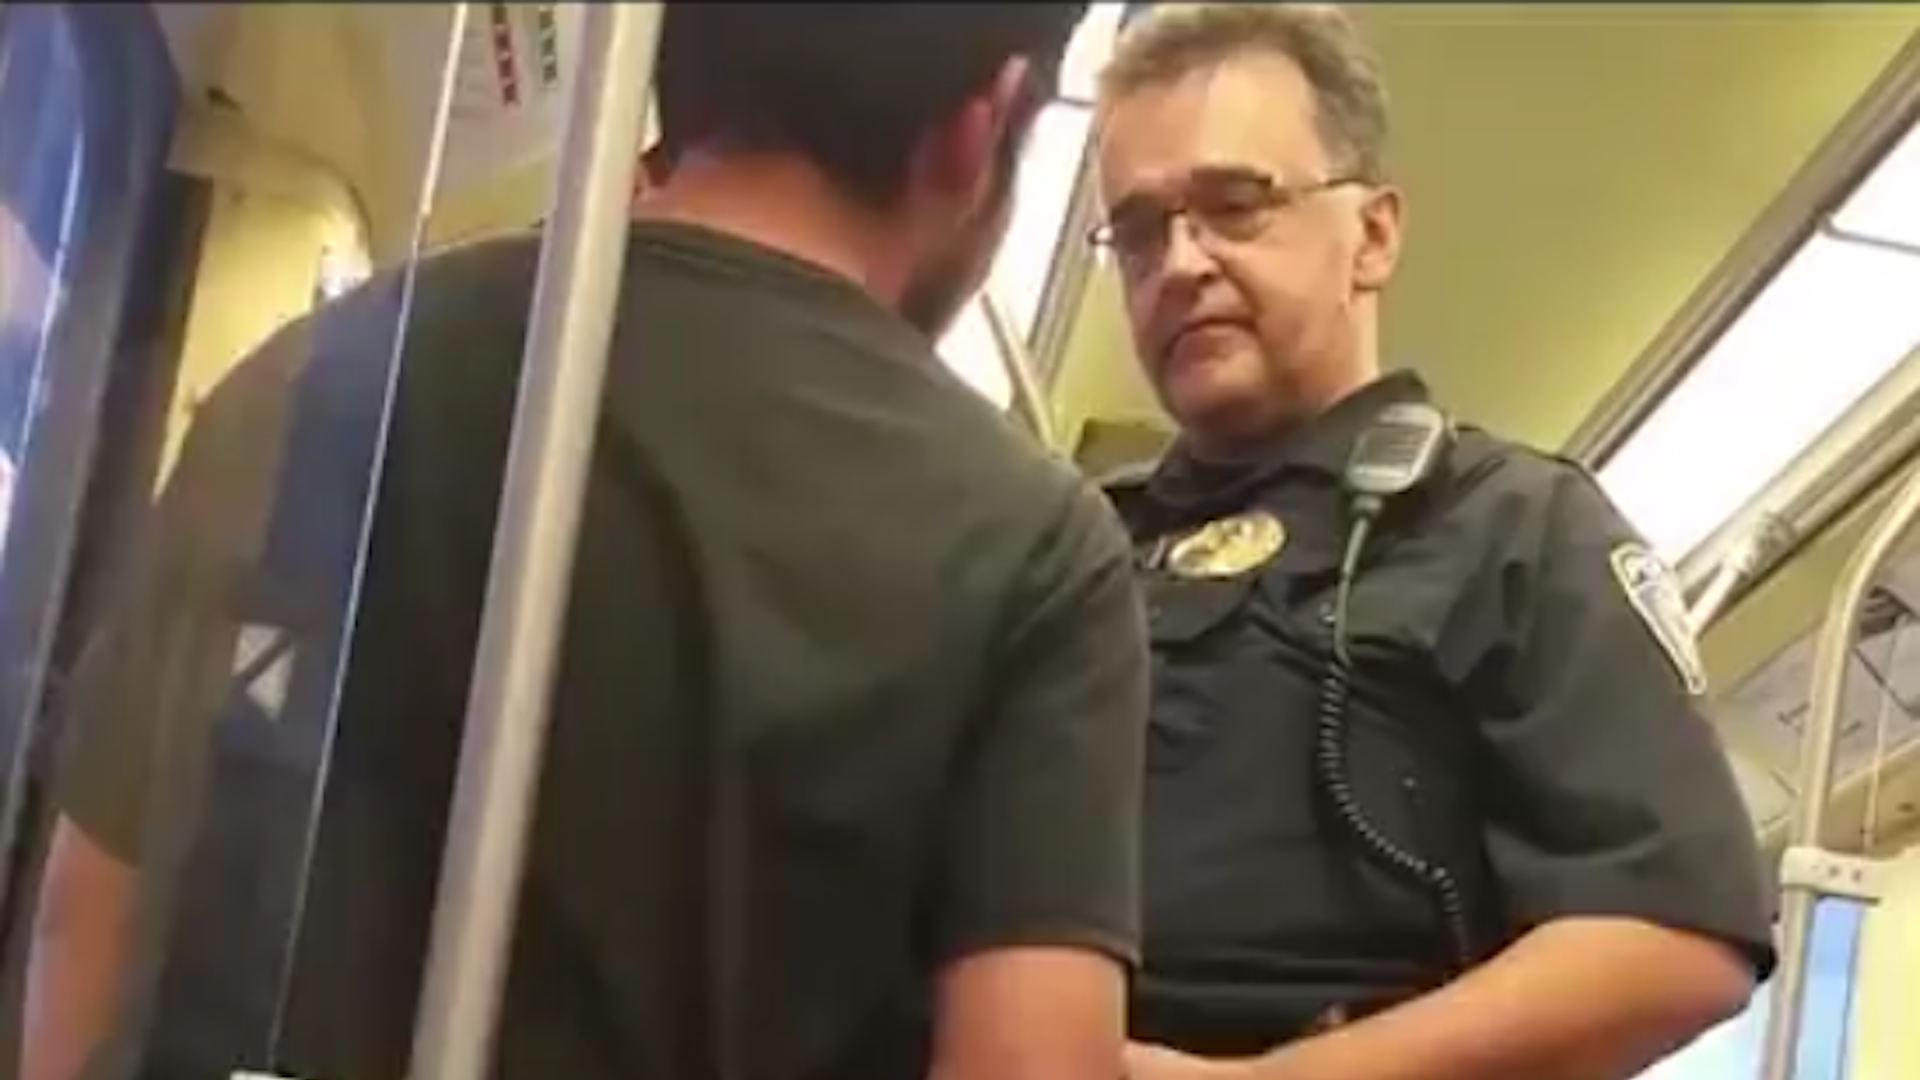 'Are you here illegally?': Probe underway into video of transit officer checking rider's immigration status